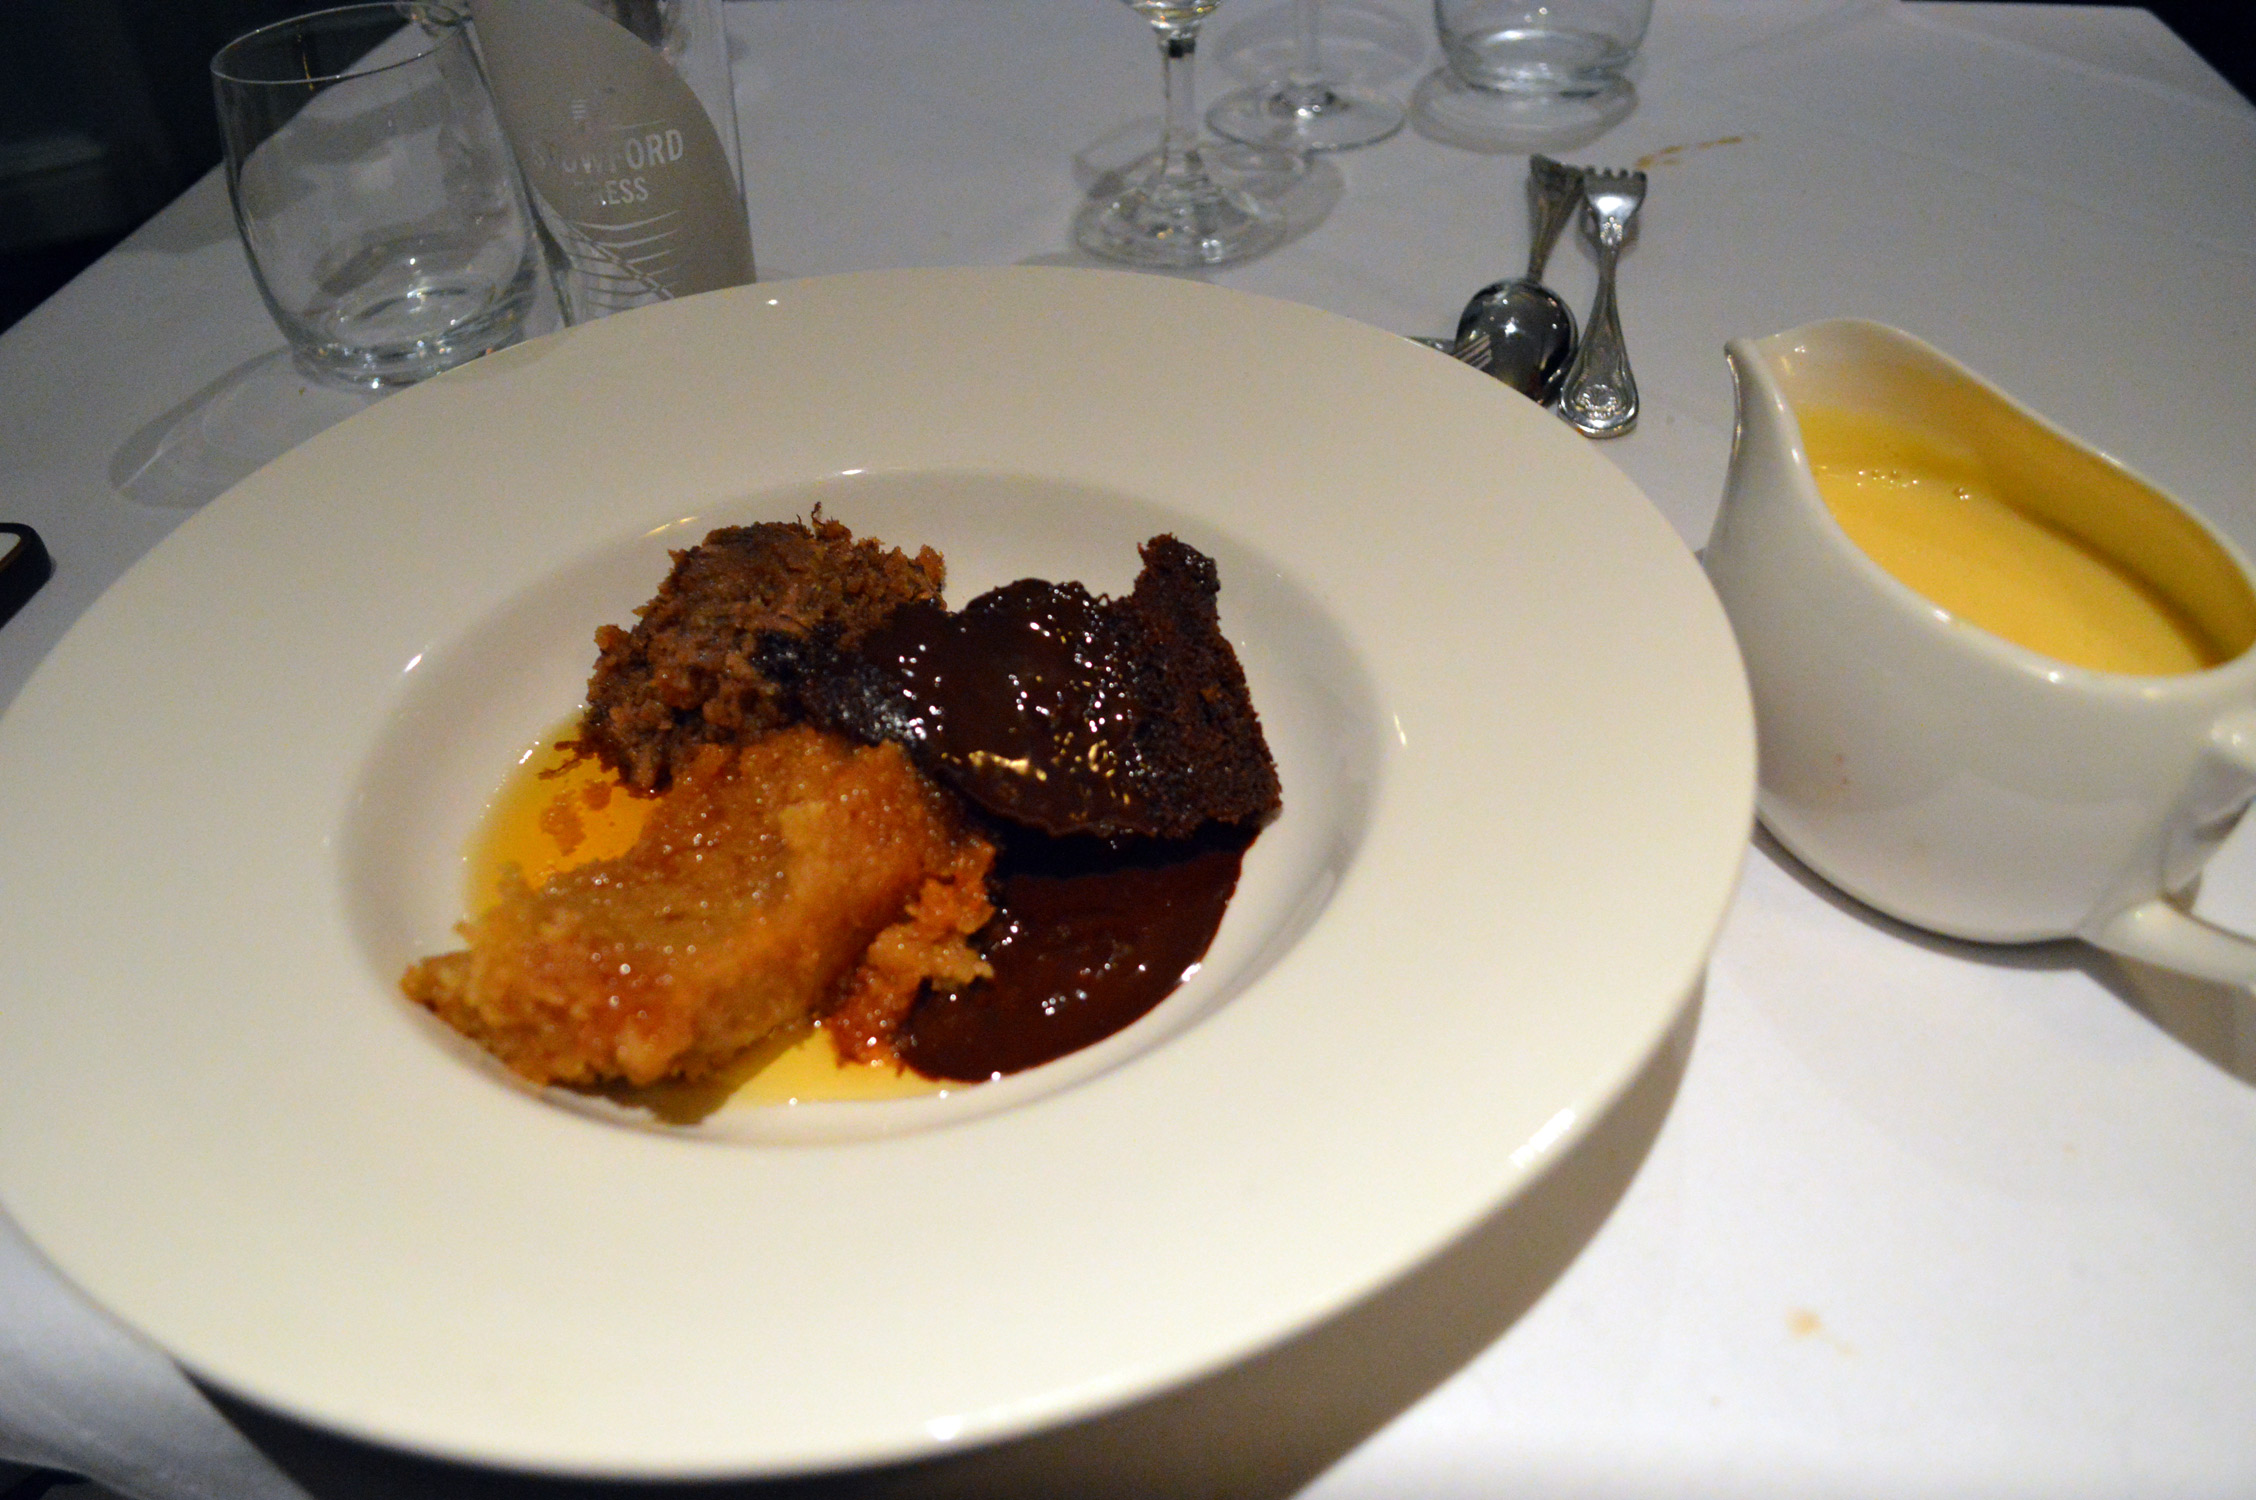 Trying English puddings at Three Ways House Hotel